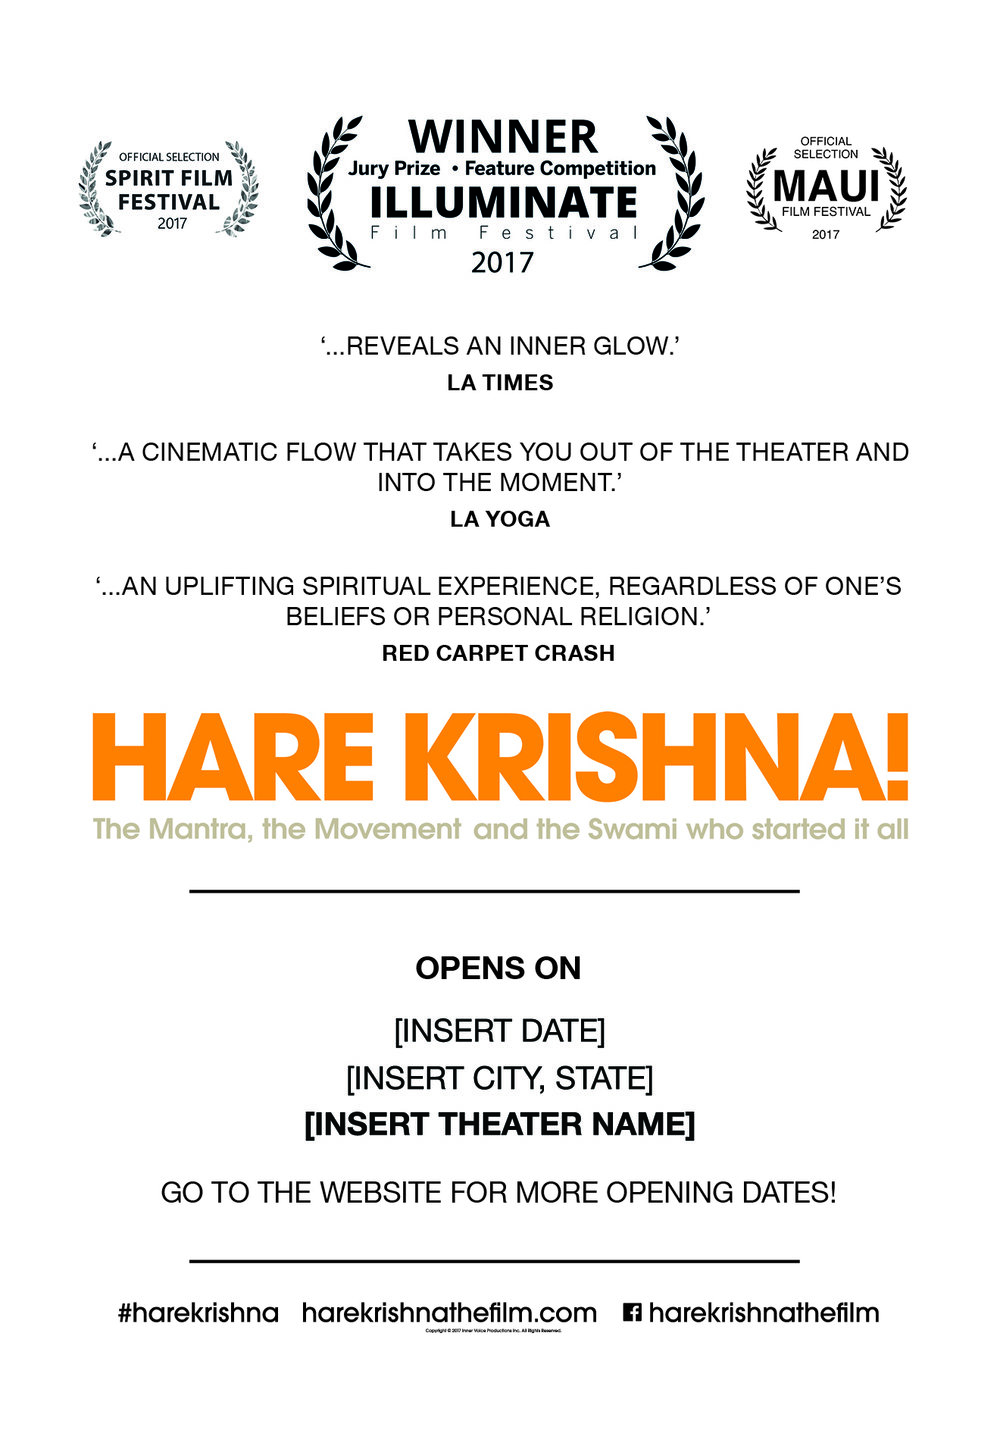 HareKrishna!-Postcard-BackSide(4%22x6%22).jpg